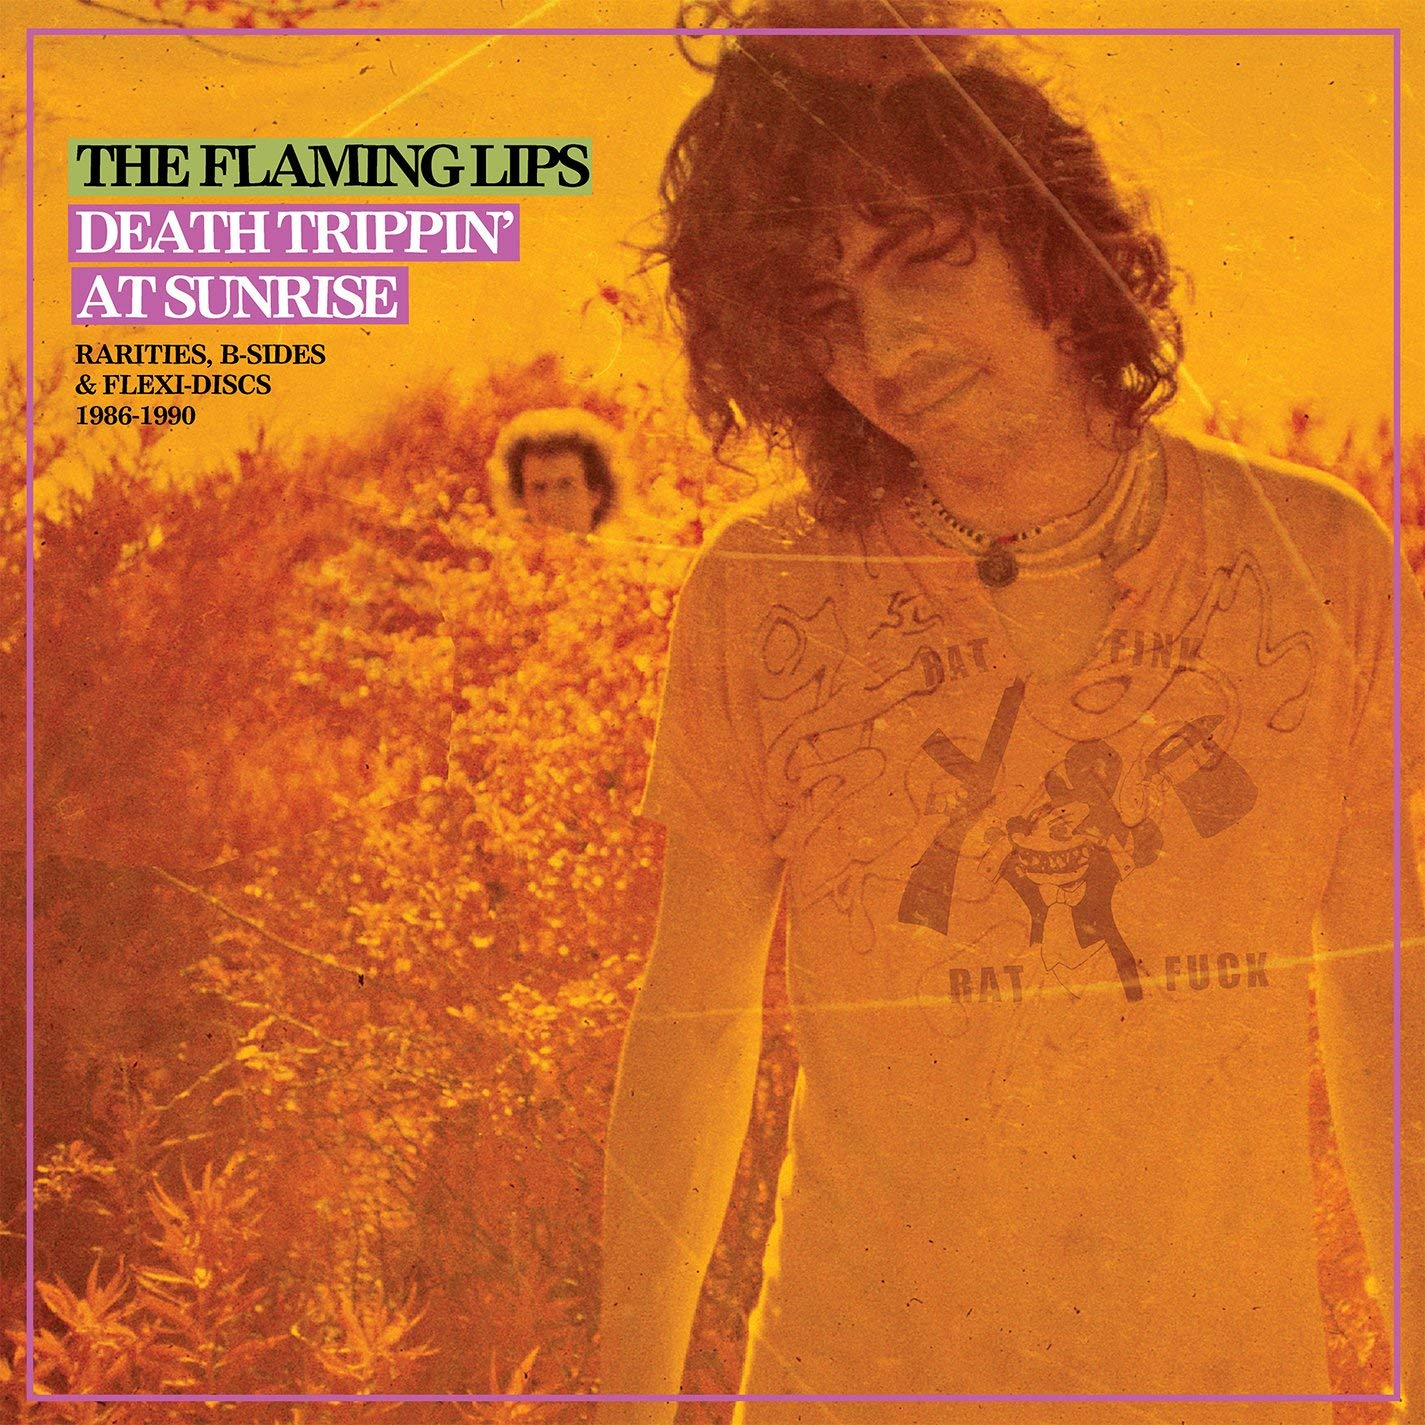 The Flaming Lips The Flaming Lips. Death Trippin' At Sunrise. Rarities, B-Sides & Flexi-Discs 1986-1990 (2 LP) the flaming stars the flaming stars ginmill perfume the story far 1995 2000